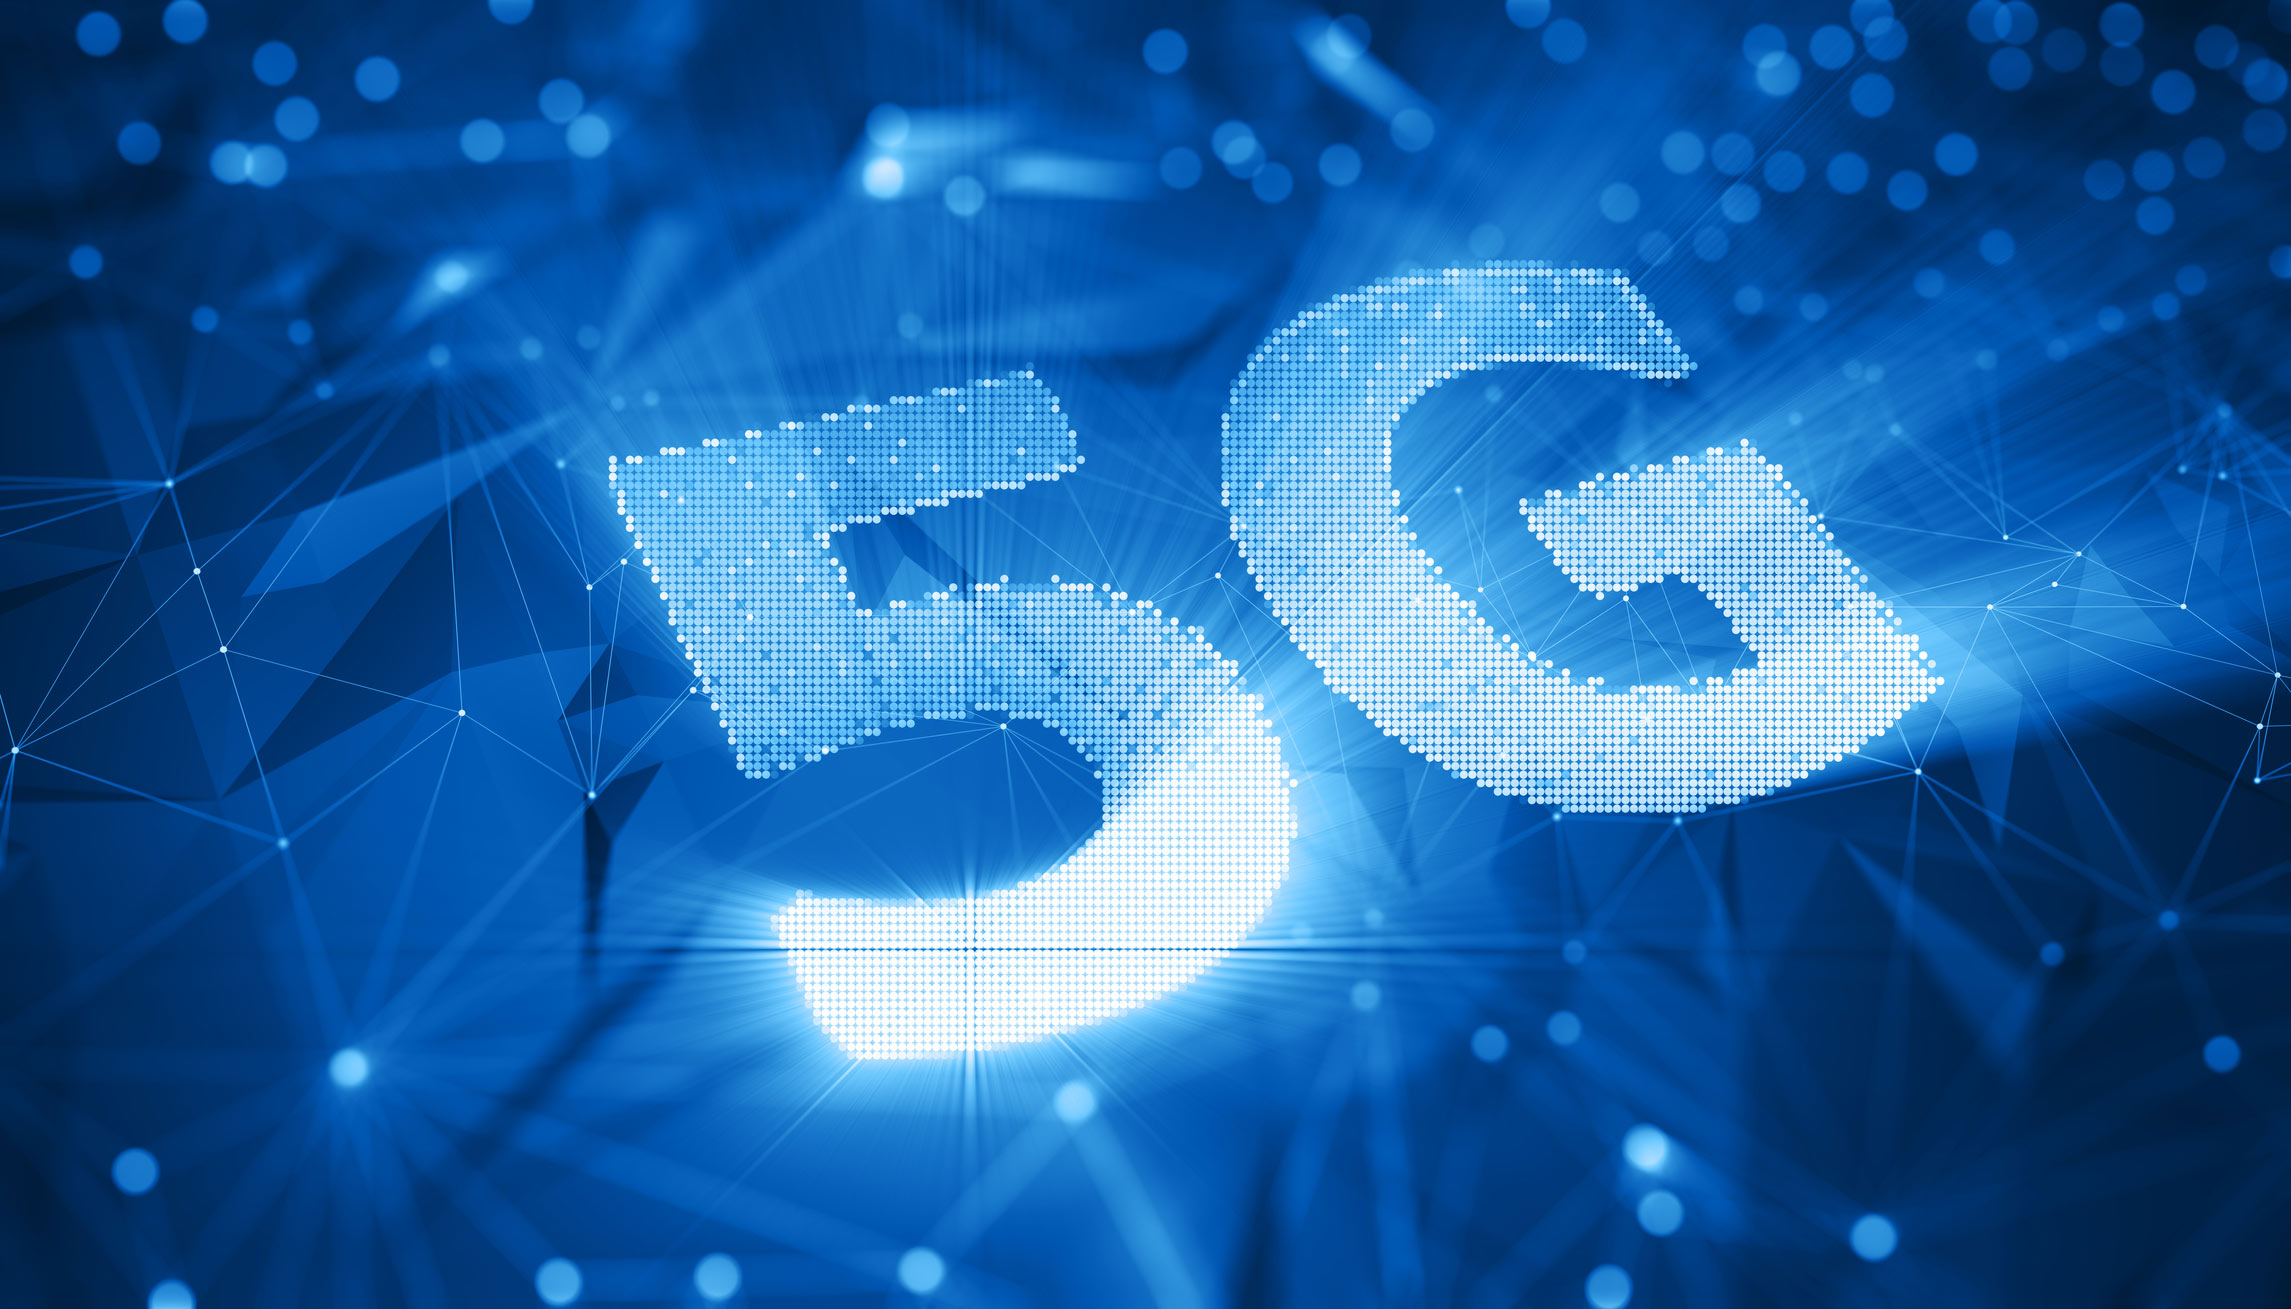 India's Quest For 5G: No Explicit Ban But Chinese Equipment No Go